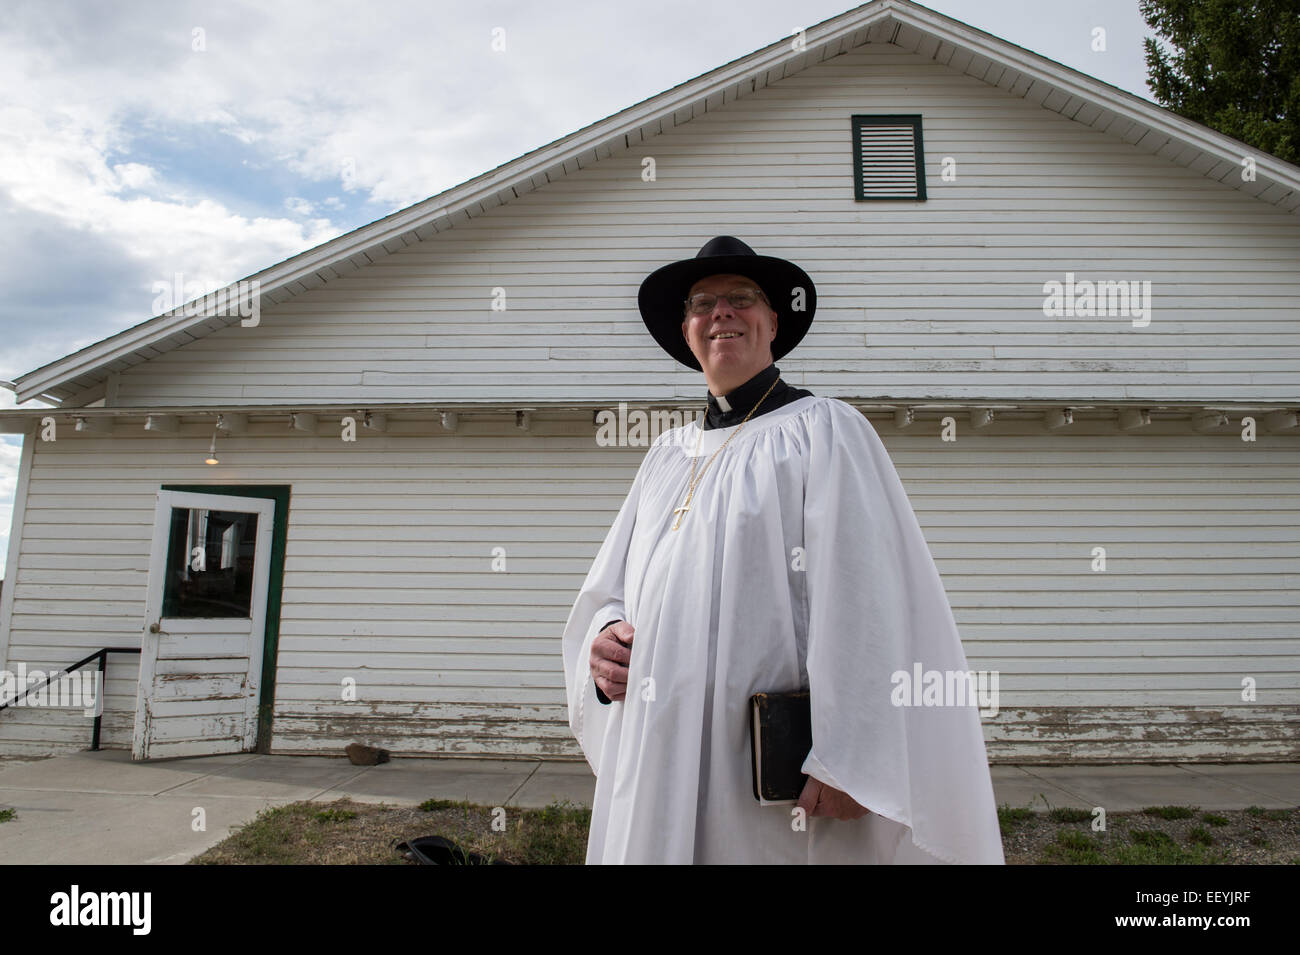 St. Paul's Episcopal Church rector Keith Axberg leads a promenade of approximately 100 dancers down Main Street - Stock Image